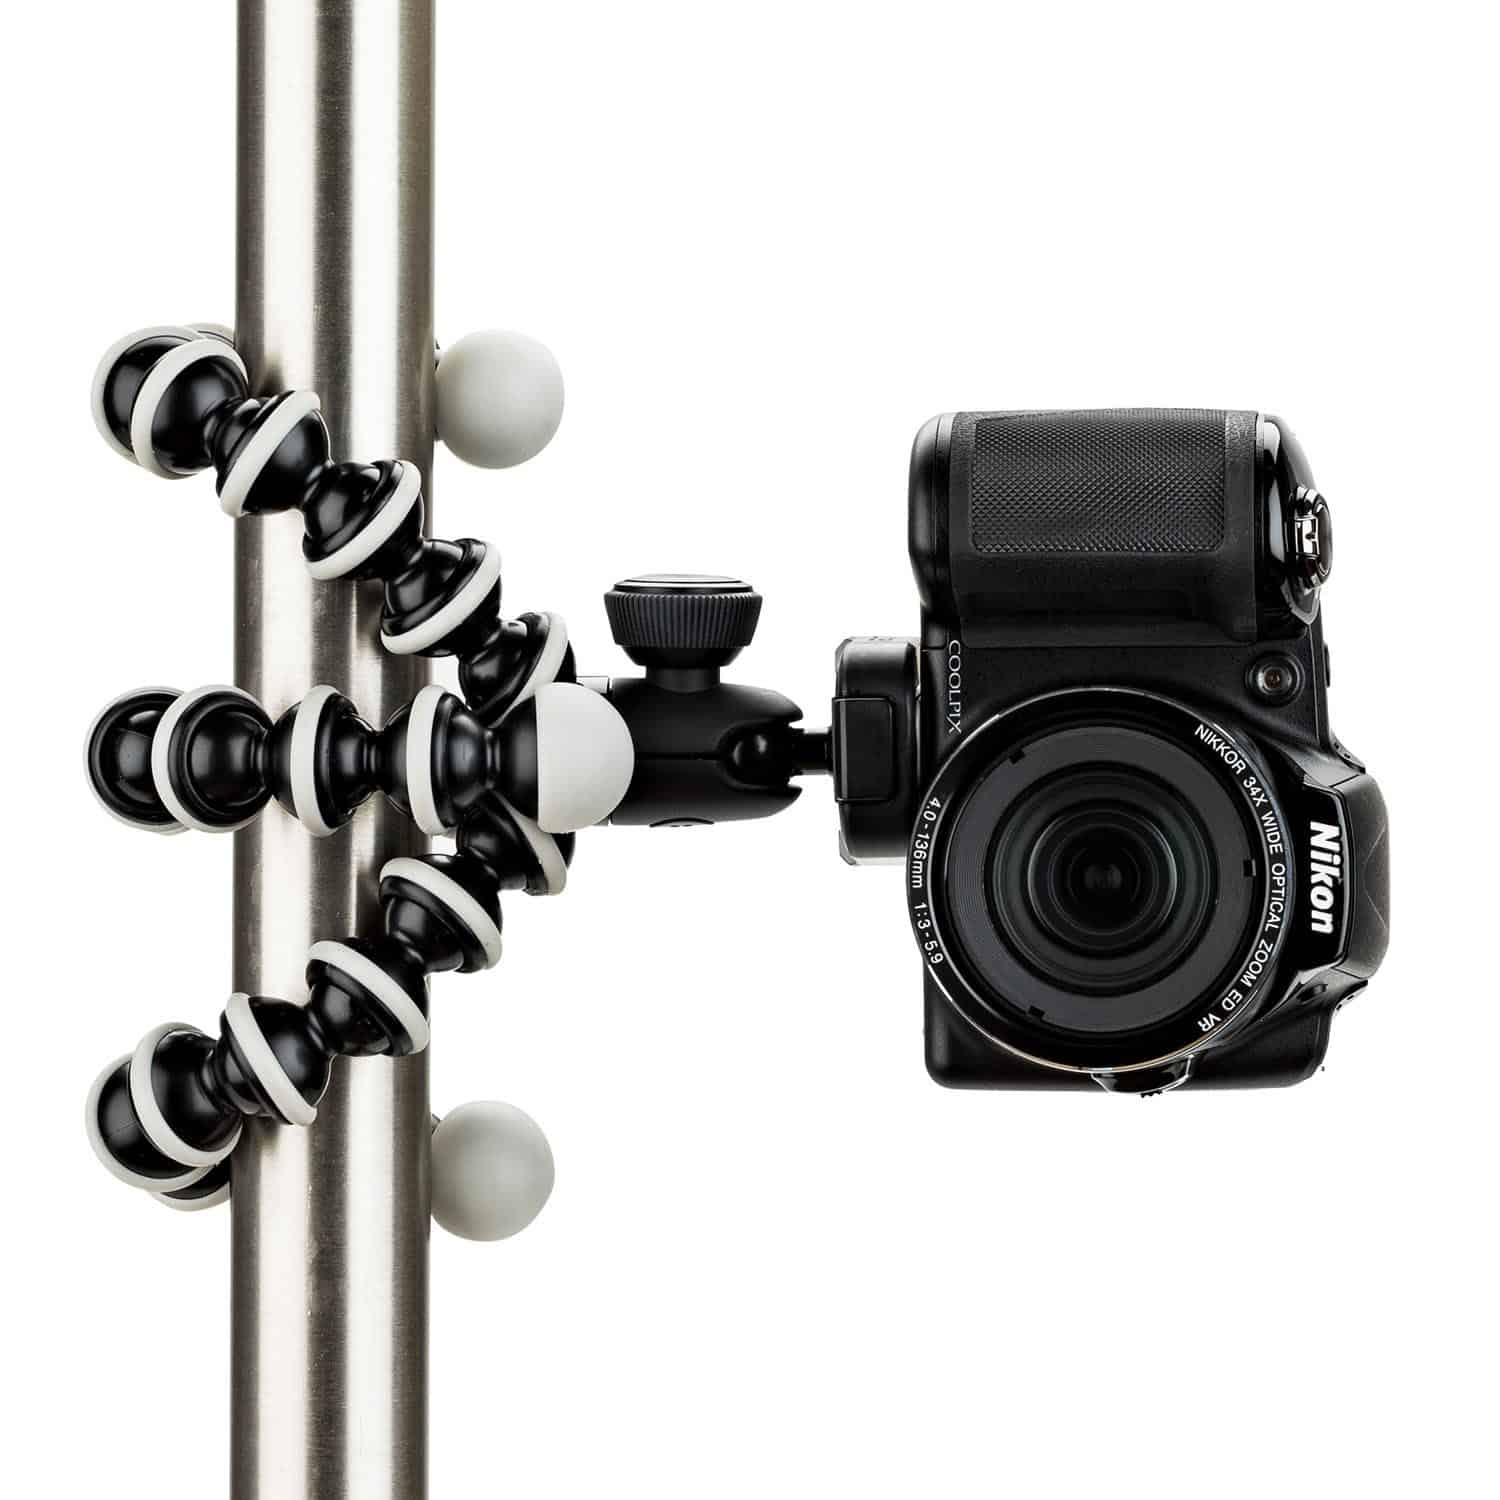 Top 9 Best Smartphone Tripod Mounts for Smartphone Photography 2